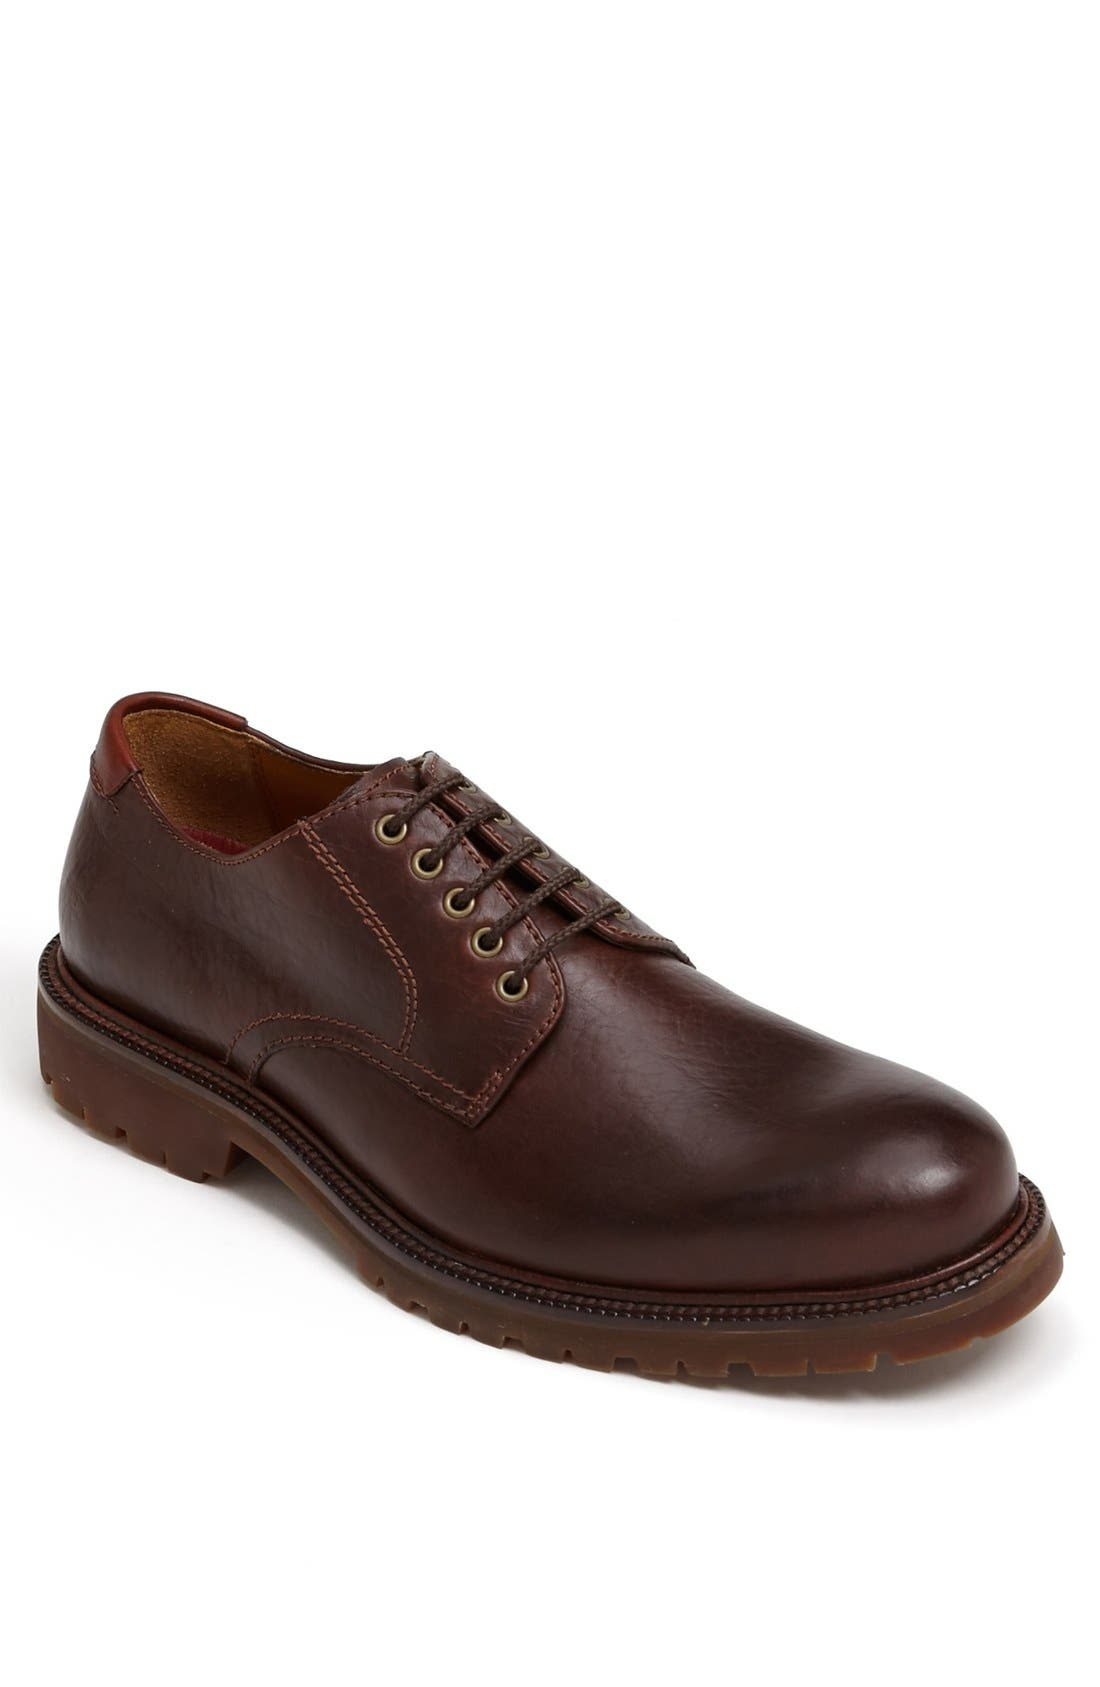 Main Image - Trask 'Gallatin' Plain Toe Derby